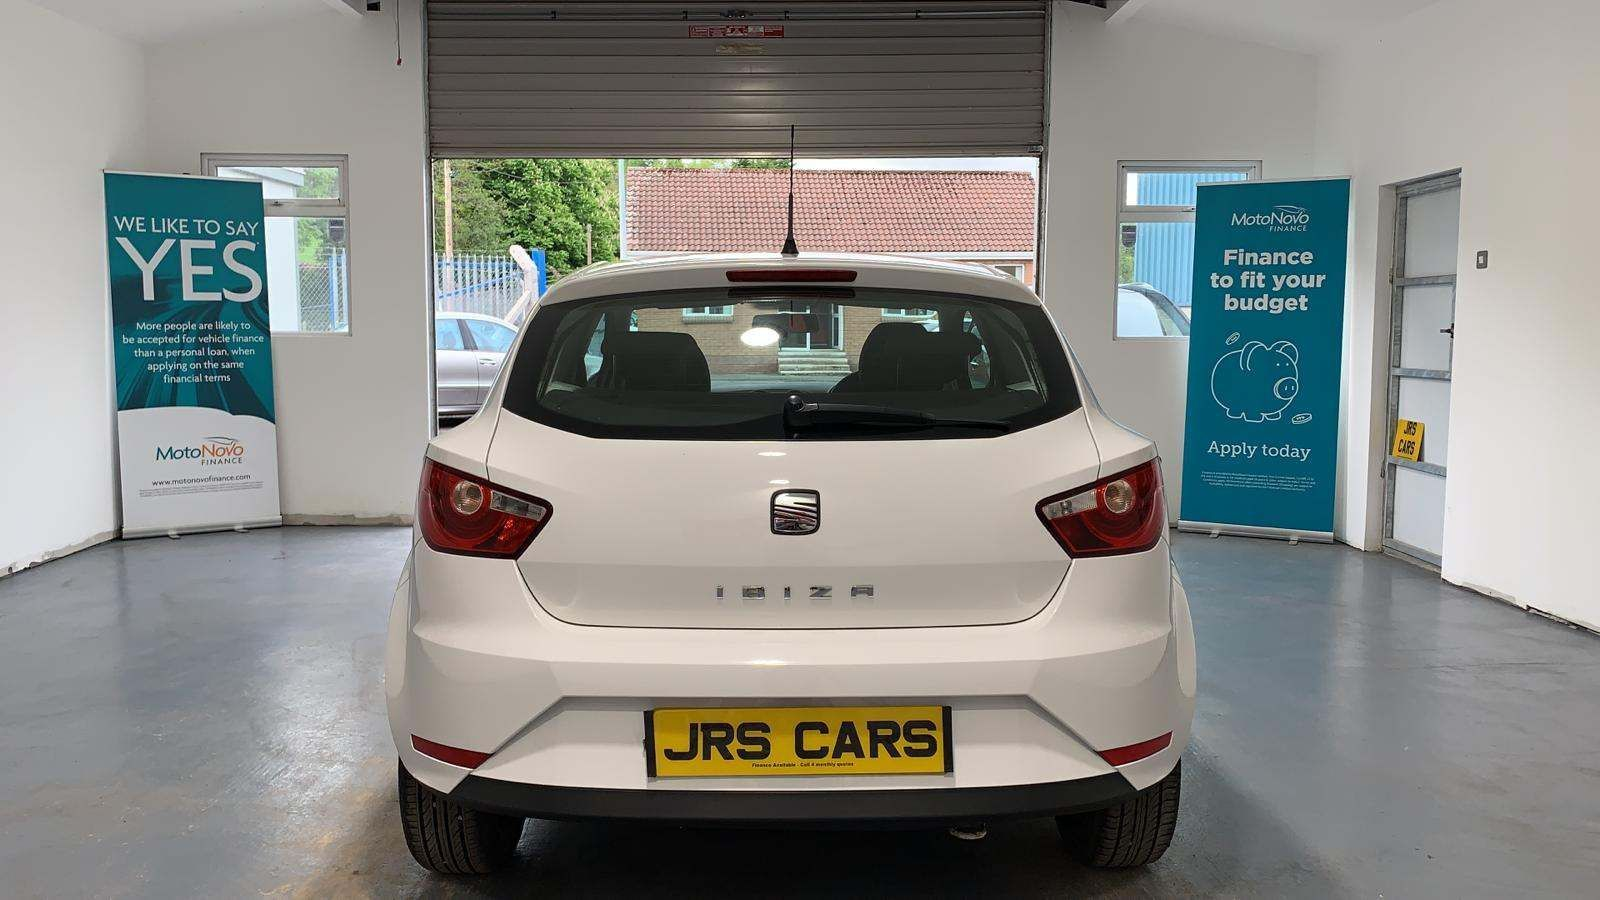 2013 SEAT Ibiza 1.2 S SportCoupe  (a/c) Petrol Manual 1 Owner – J R S Commercials And Cars Dungannon full